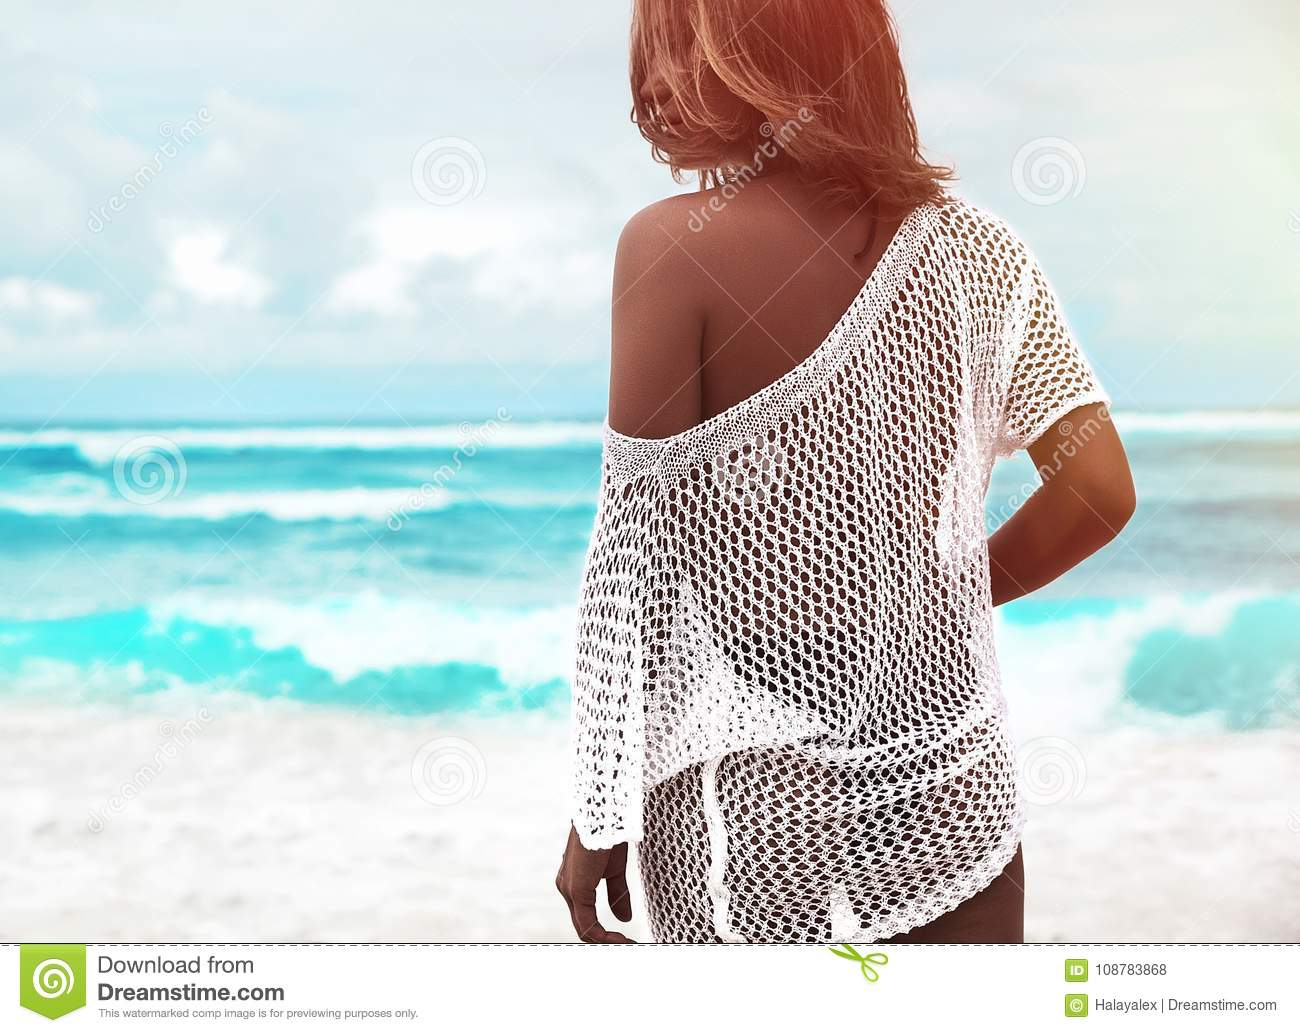 Sunbathed woman model in transparent white blouse sitting on summer beach and blue ocean background